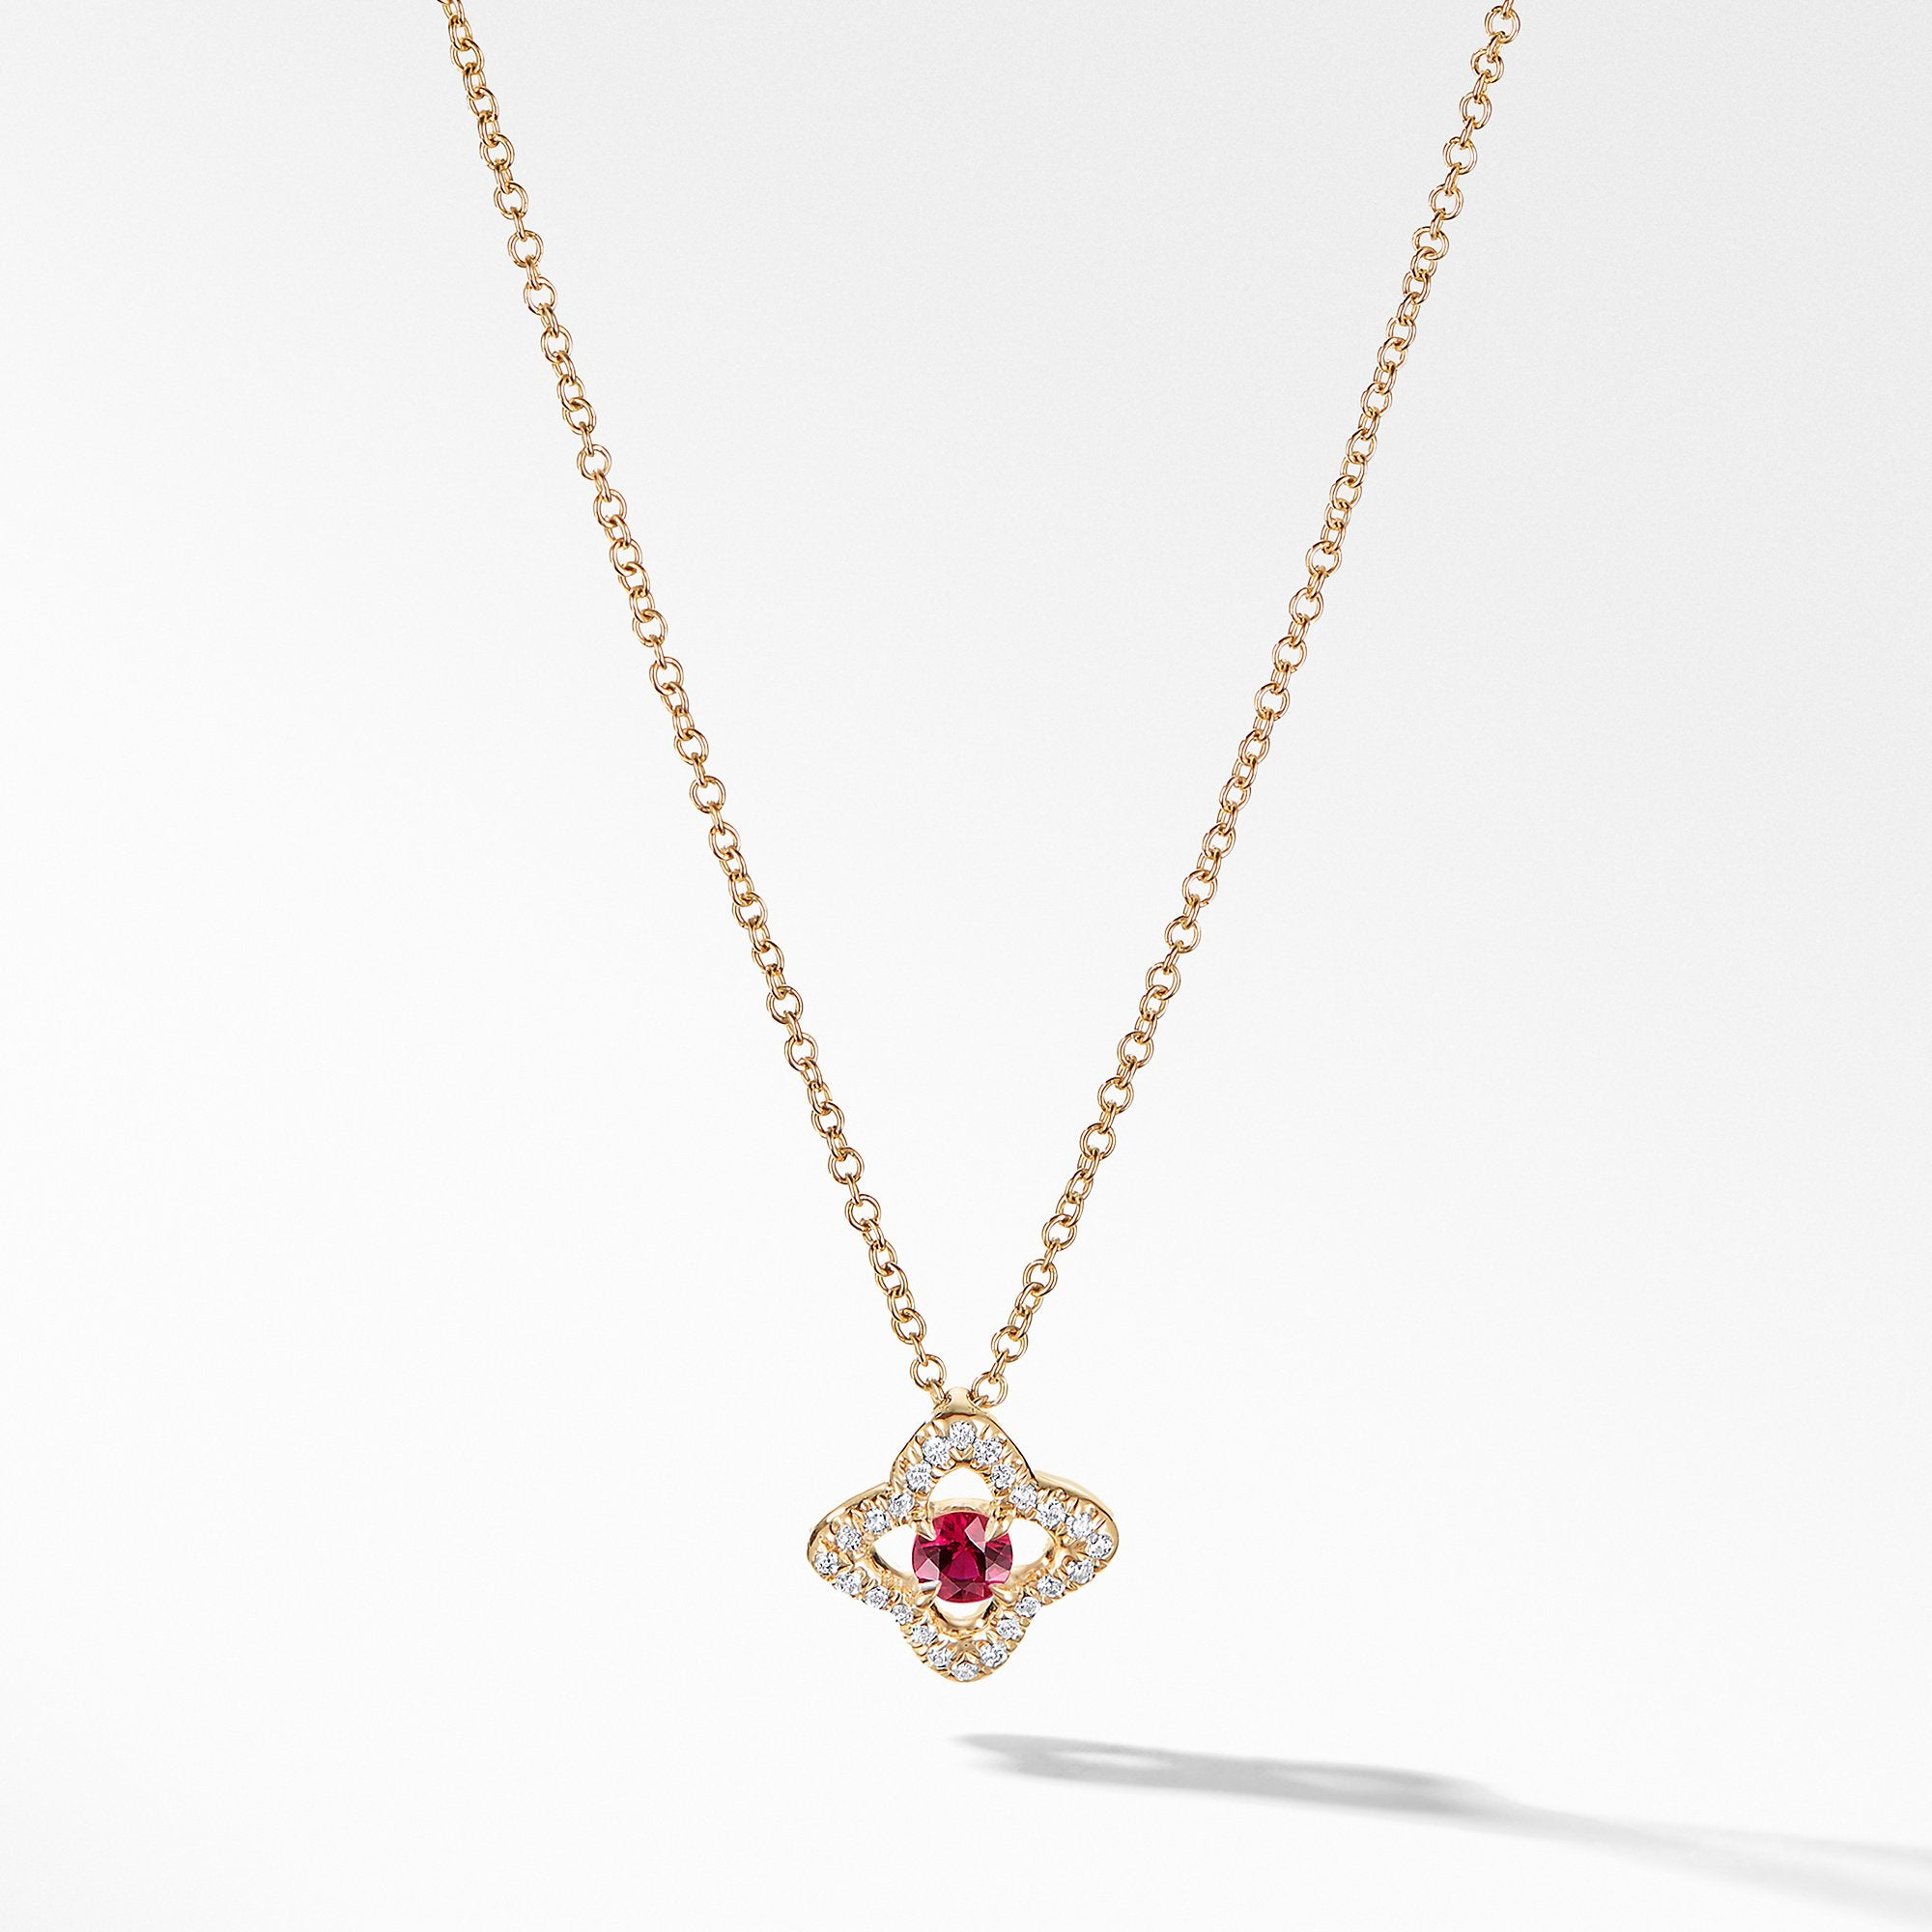 Necklace with Ruby and Diamonds in 18K Gold